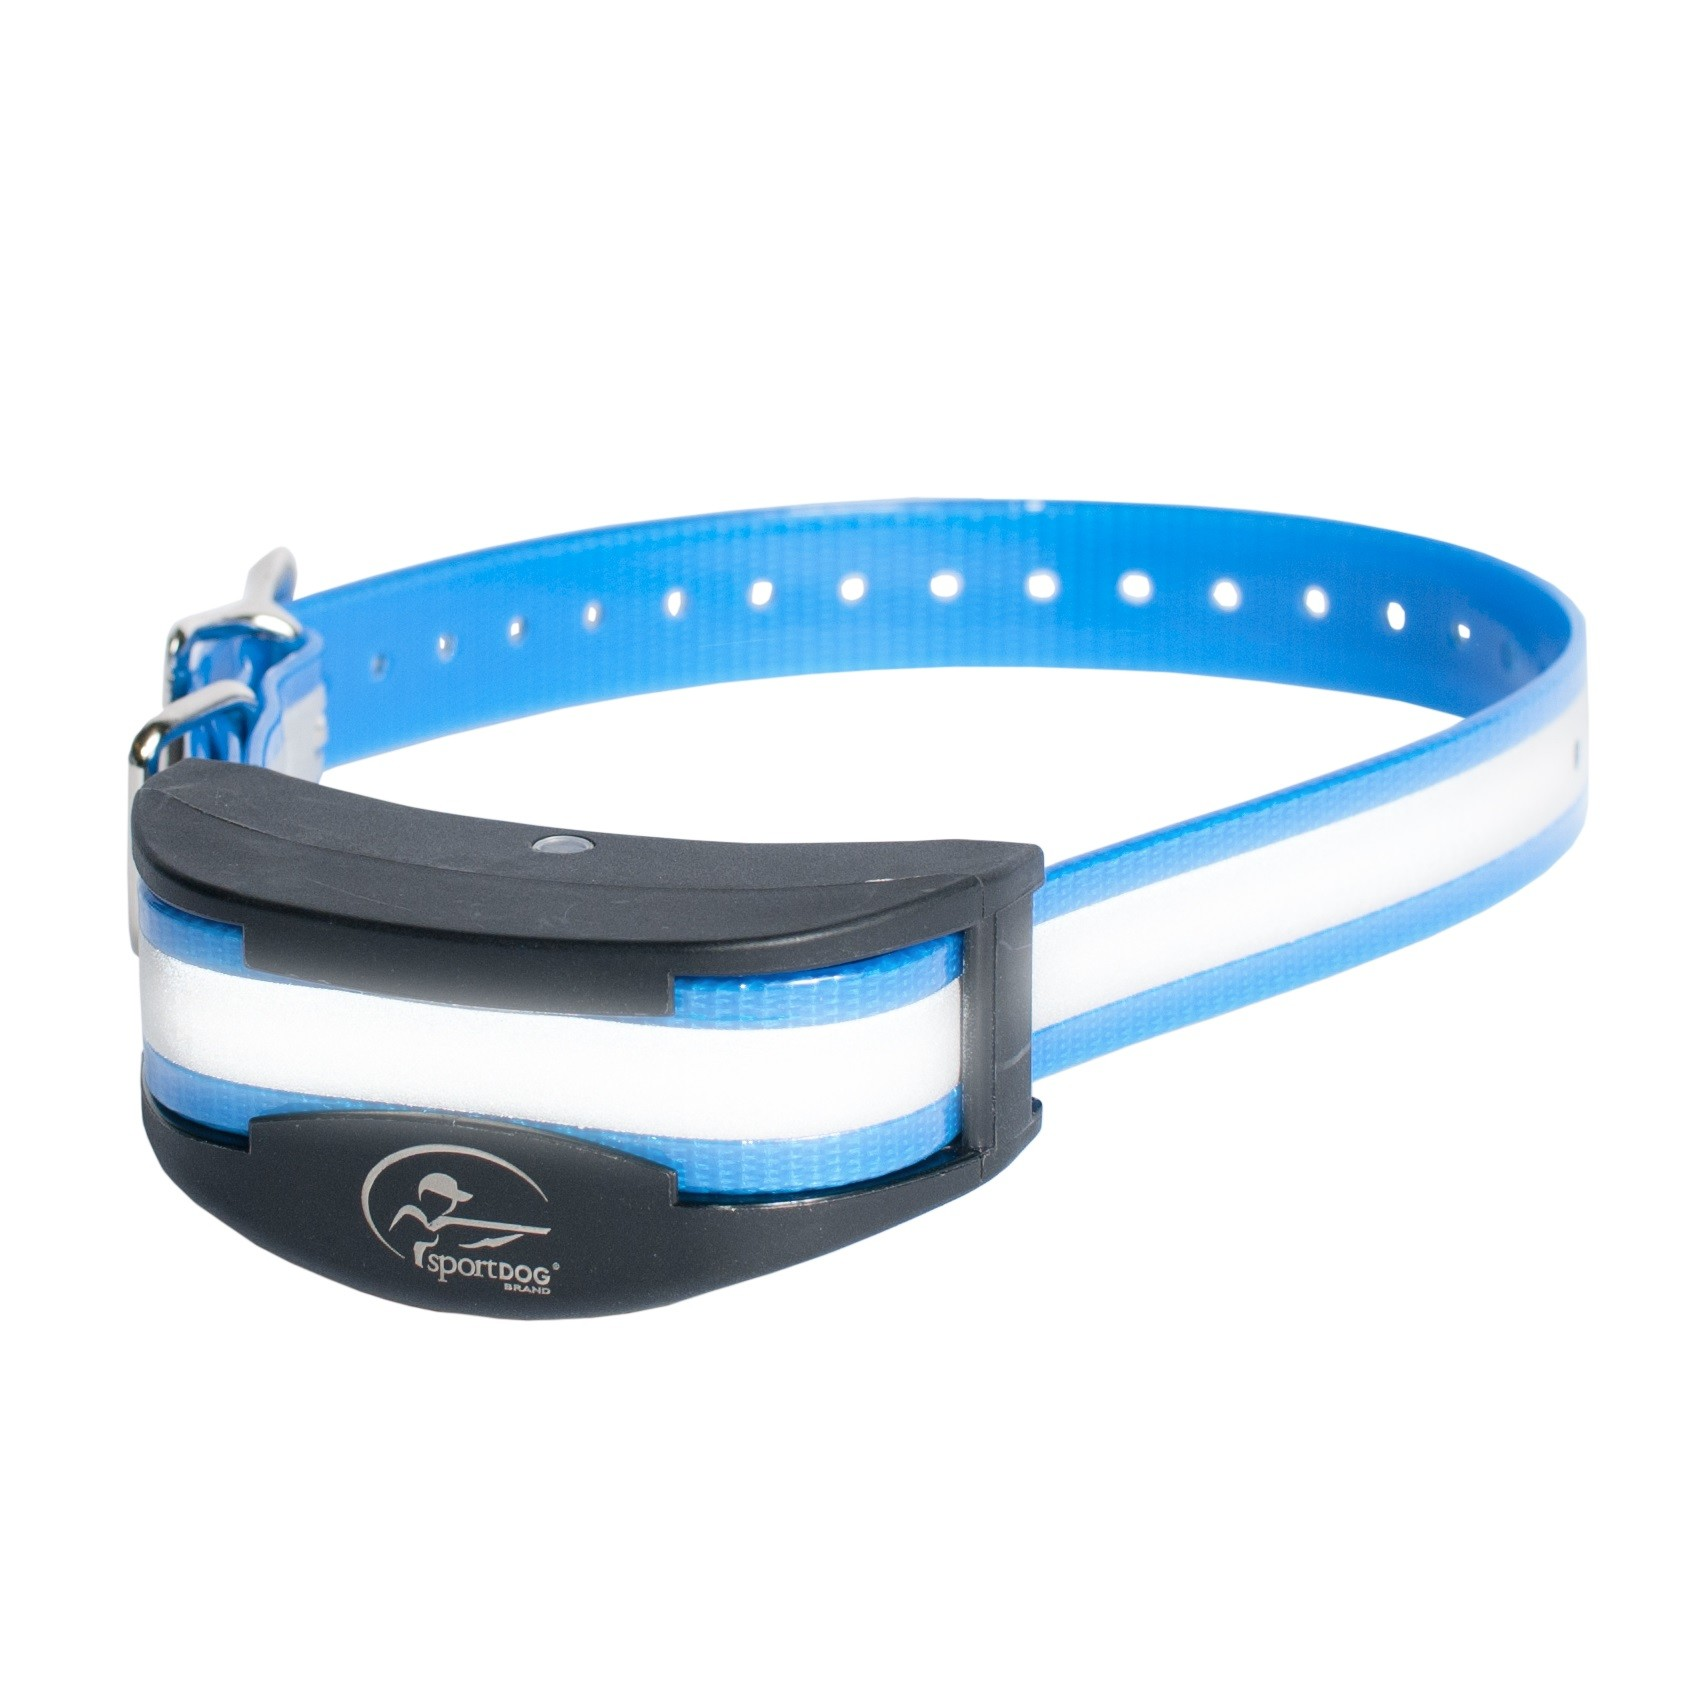 SportDOG Brand® HoundHunter® 3225 Add-A-Dog® Collar - Rechargeable - Black/Blue